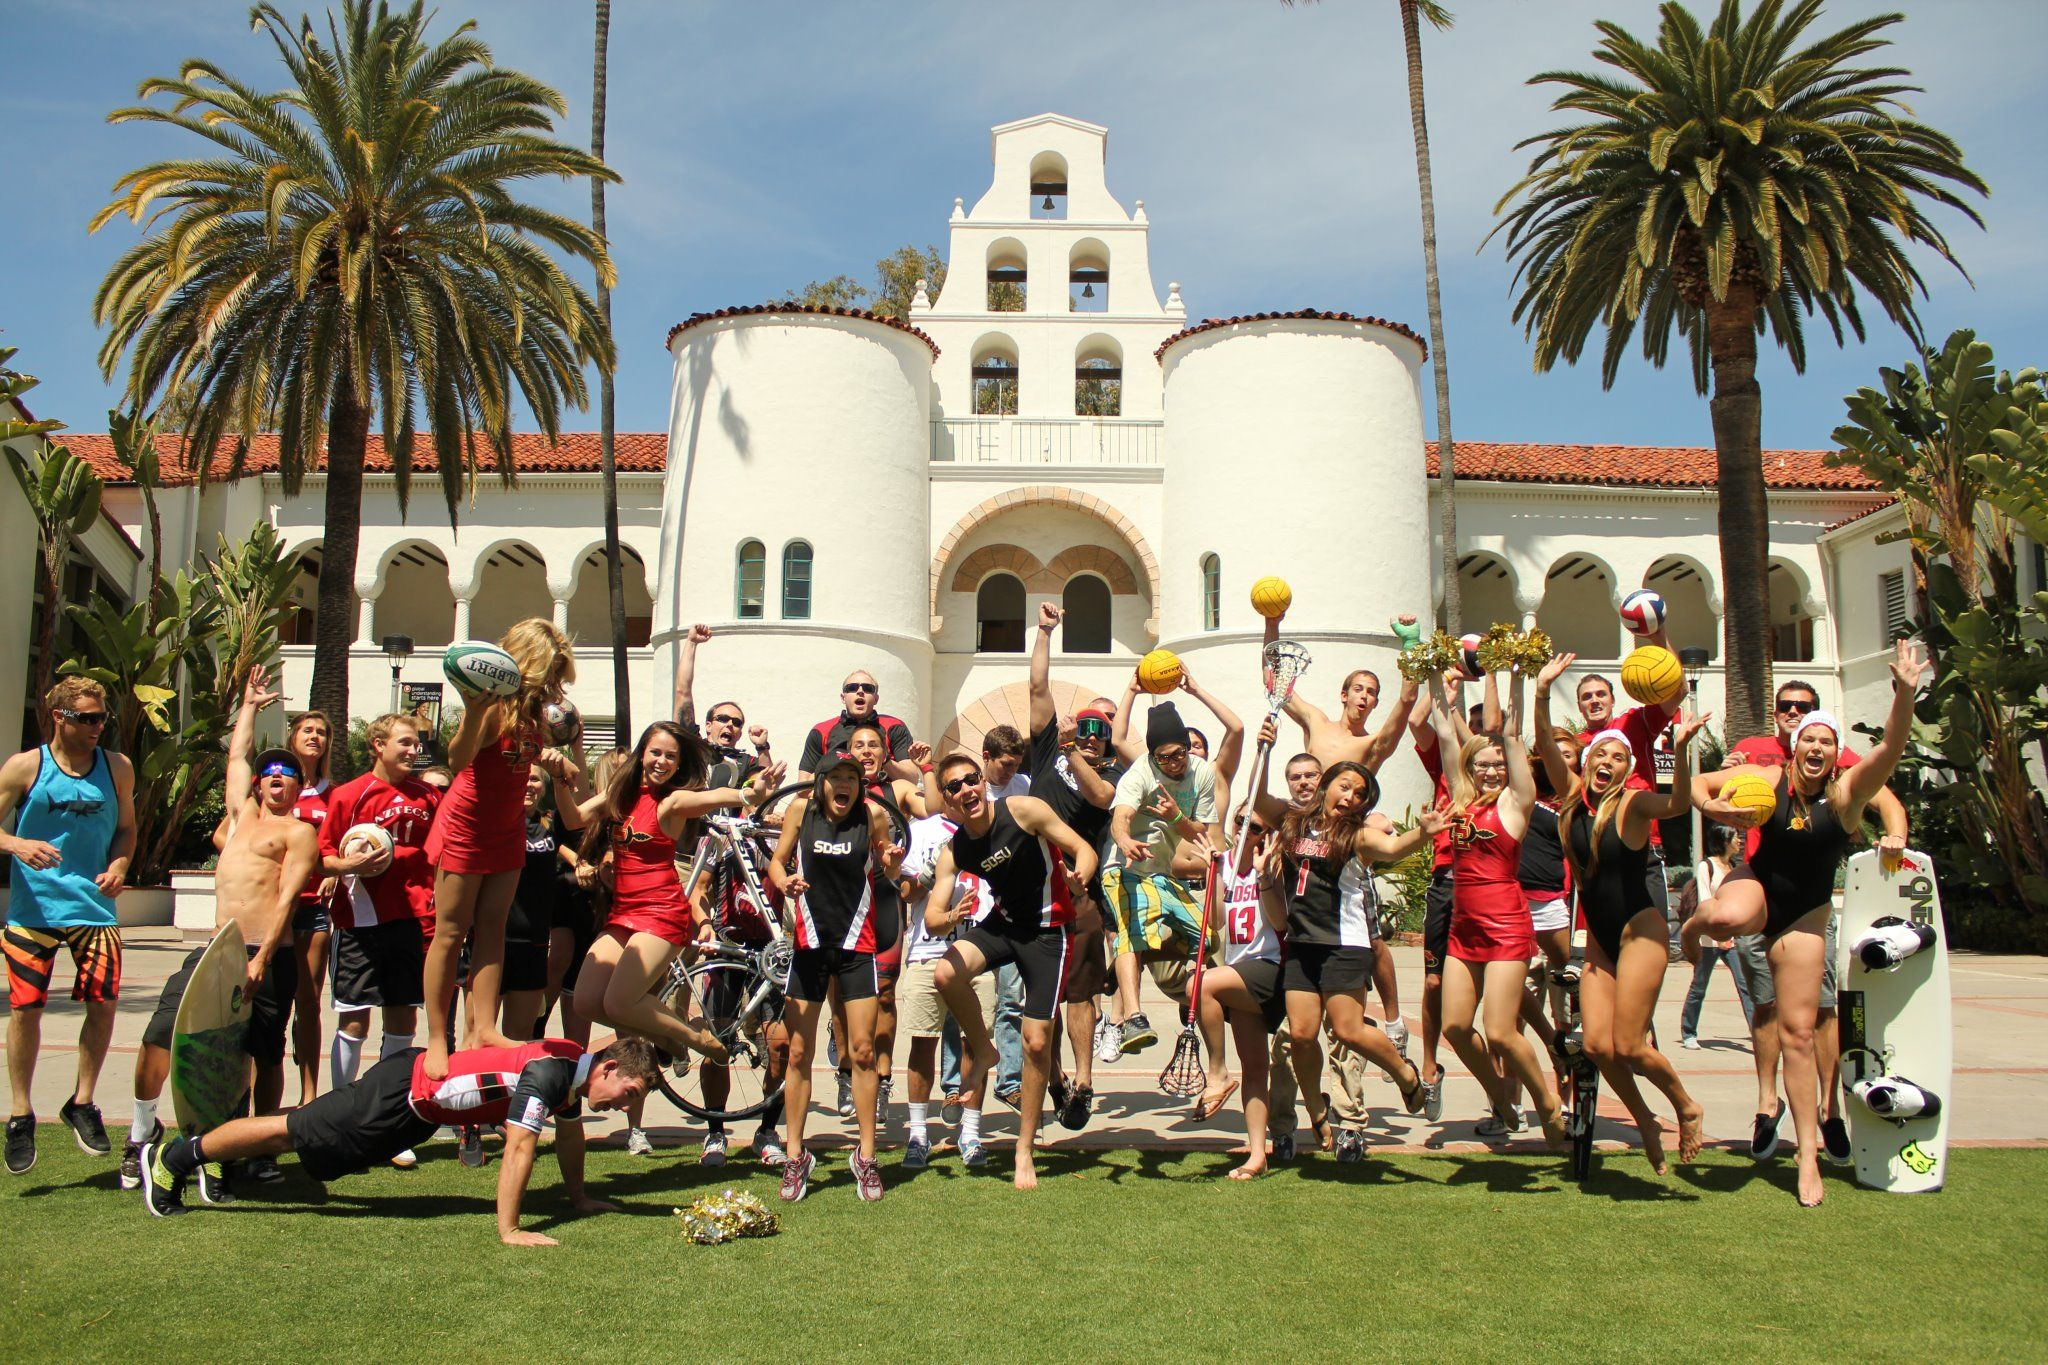 Aztec Sports Clubs Stay Active At The Aztec Recreation Center Arc College Life Life Recreation Centers